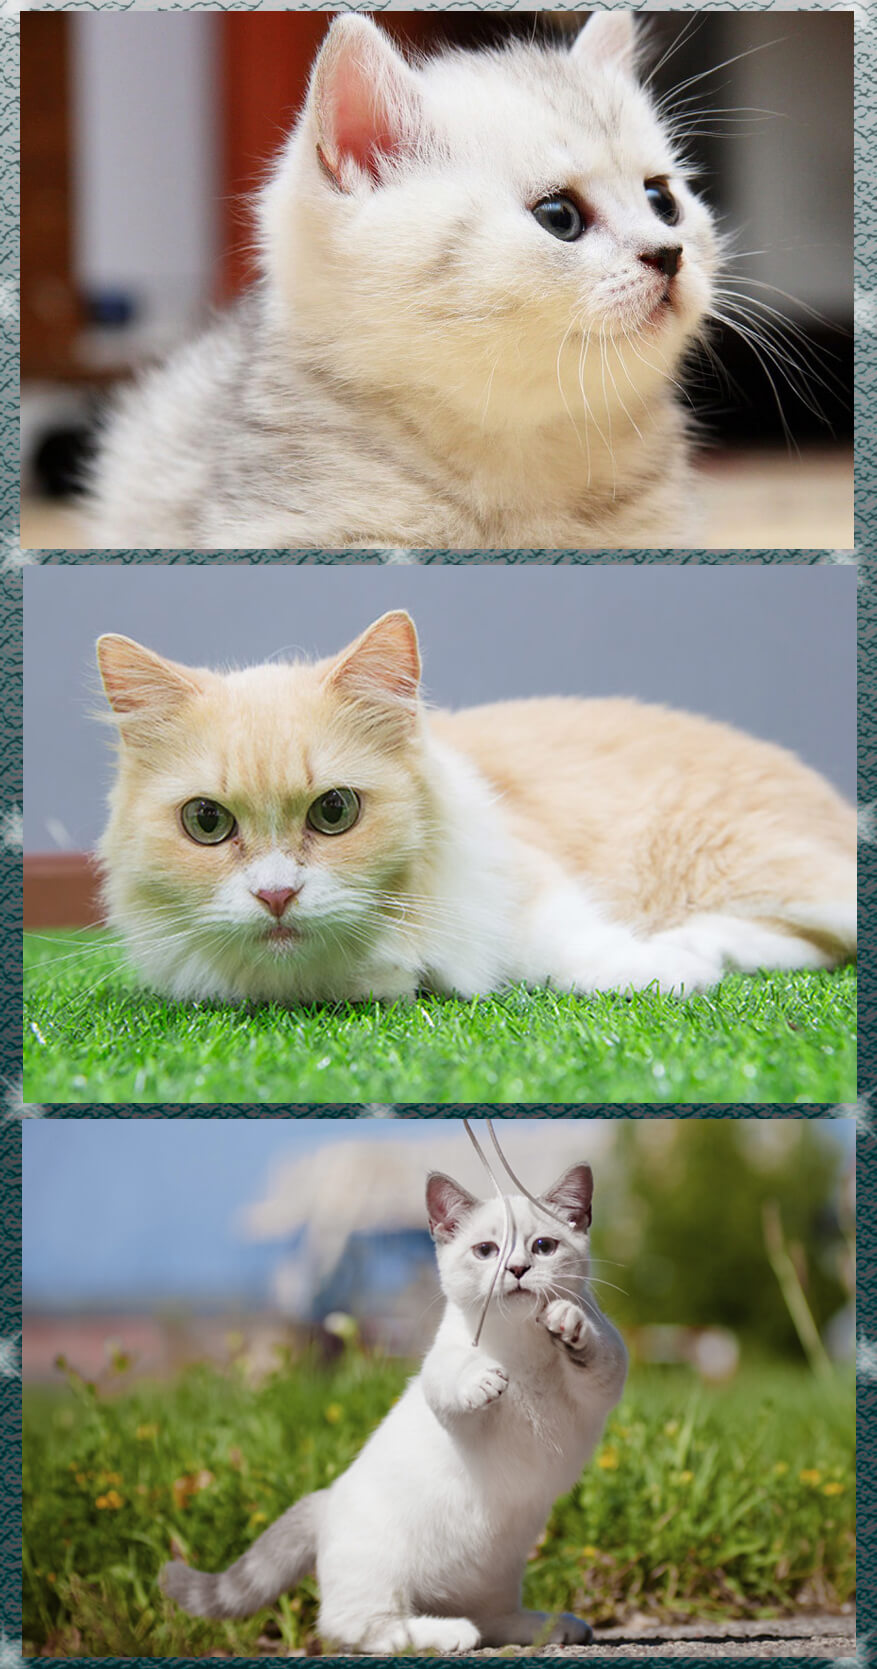 Some useful information about the Munchkin cat for feline lovers